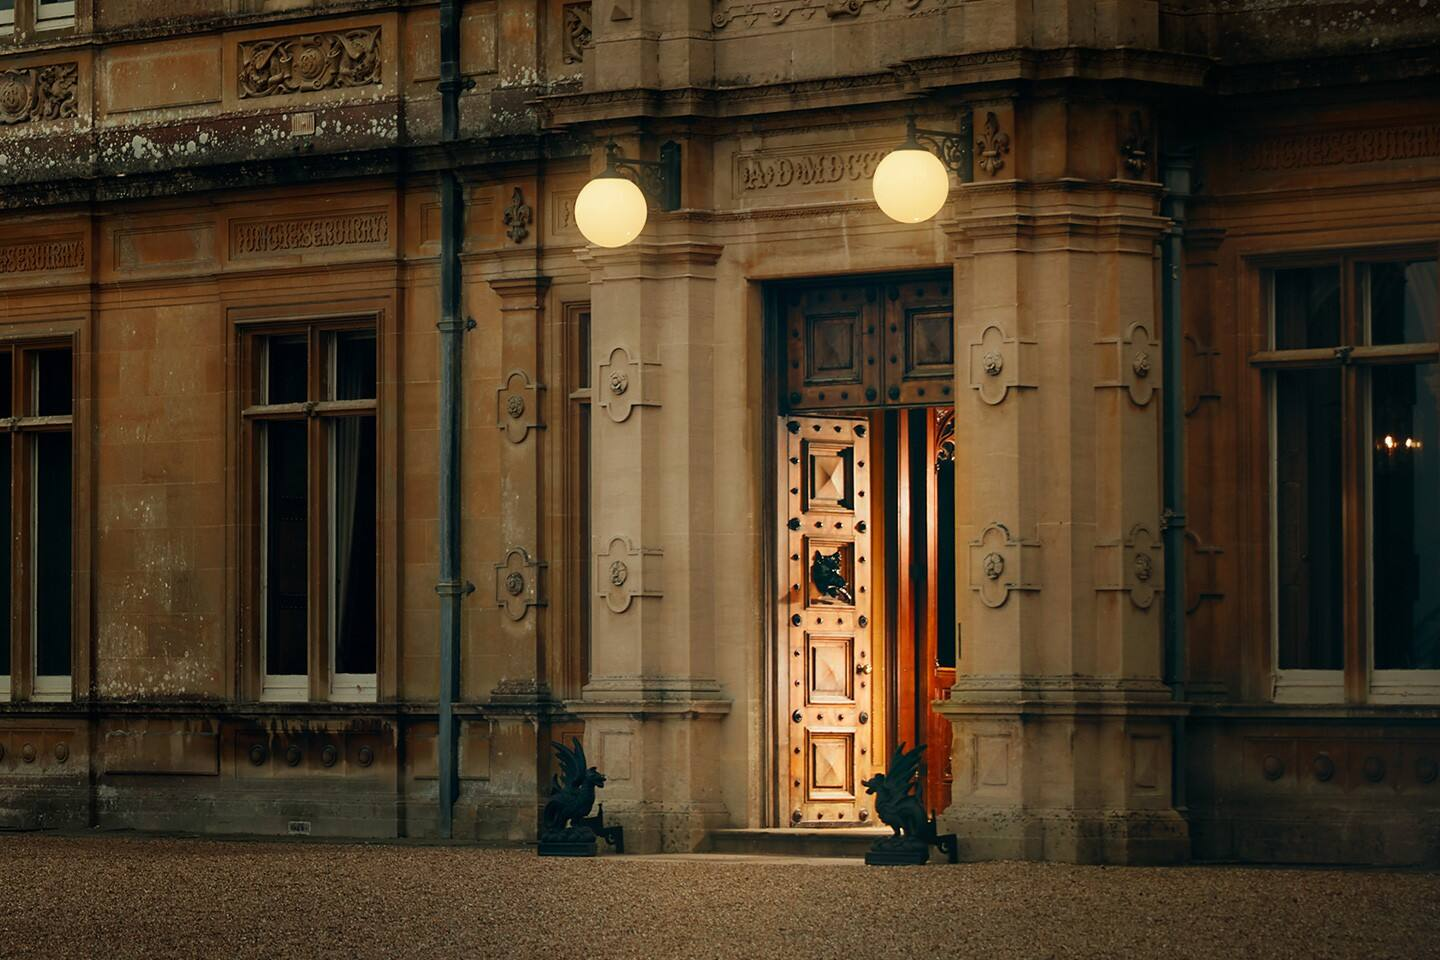 Highclere Castle opens its doors for one night